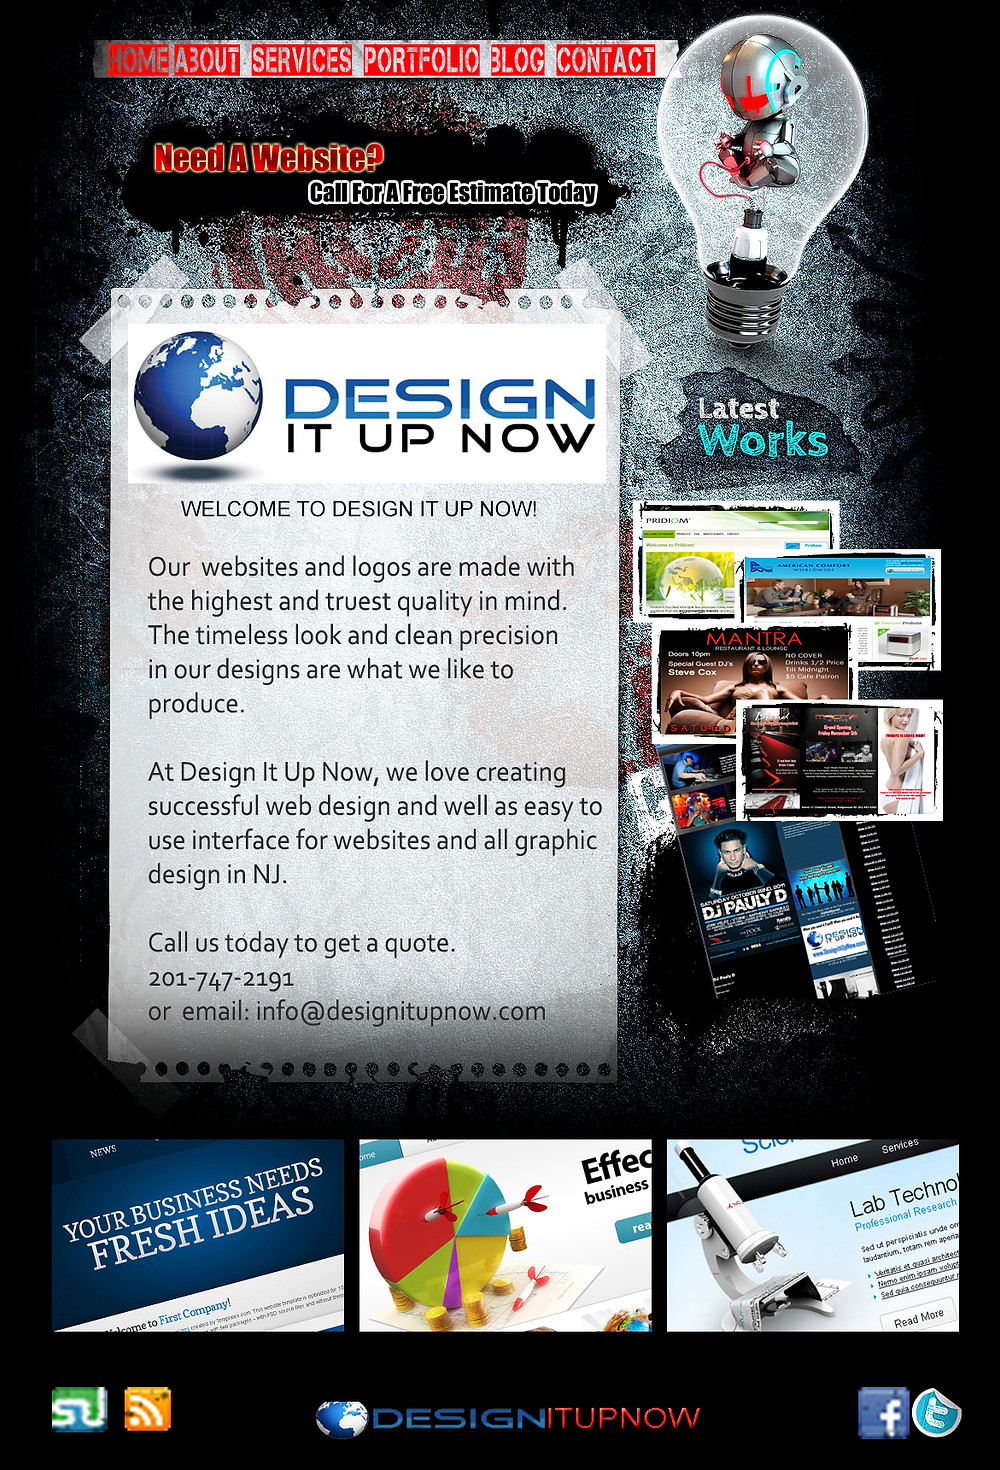 The Original Designitupnow site back in 2010